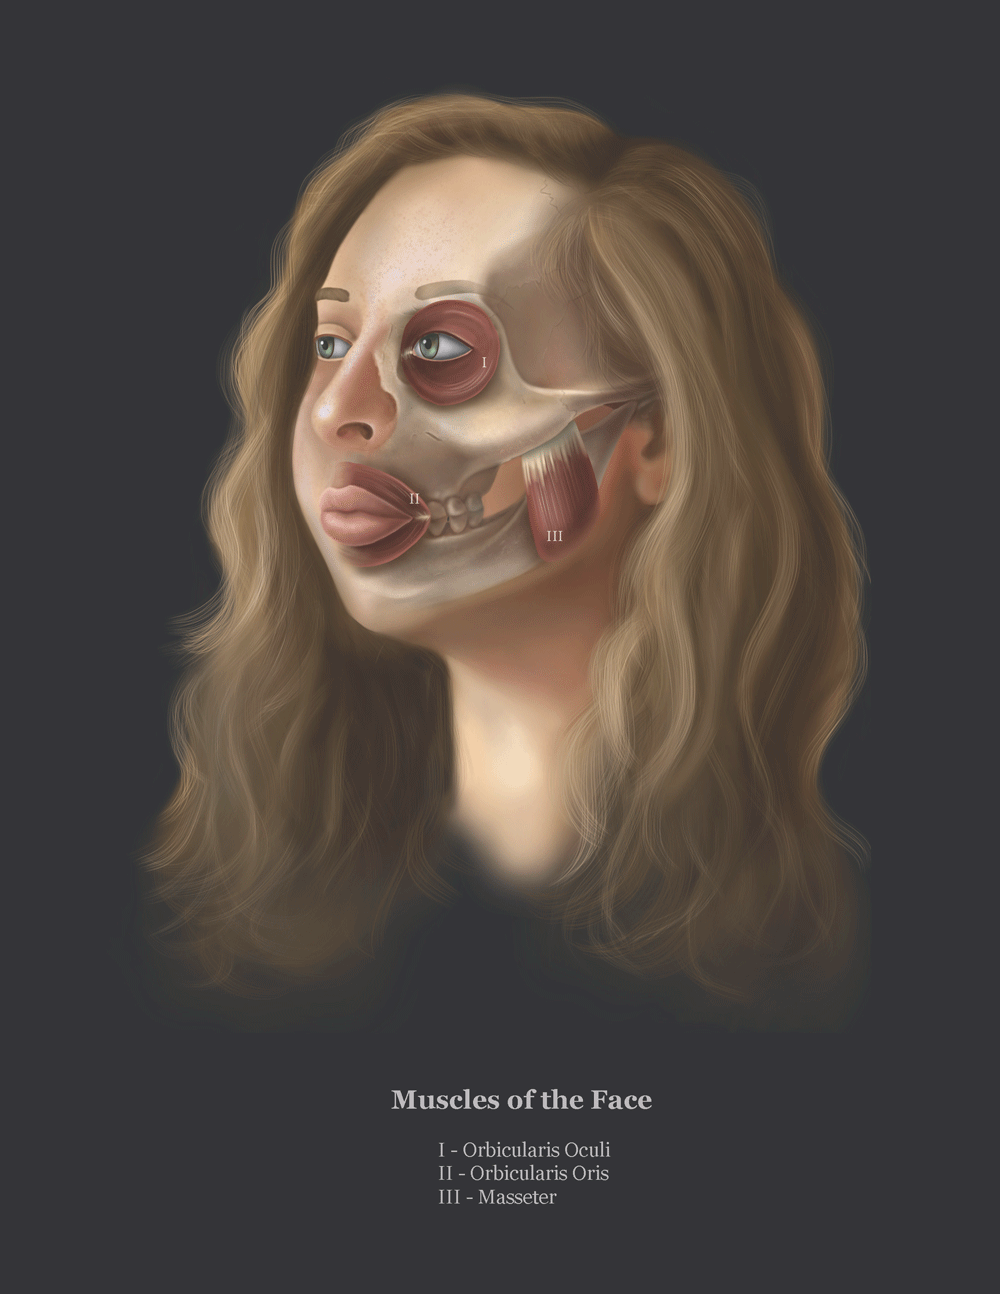 Scientific Illustration by Julia Lunavictoria of a self portrait depicting internal face anatomy